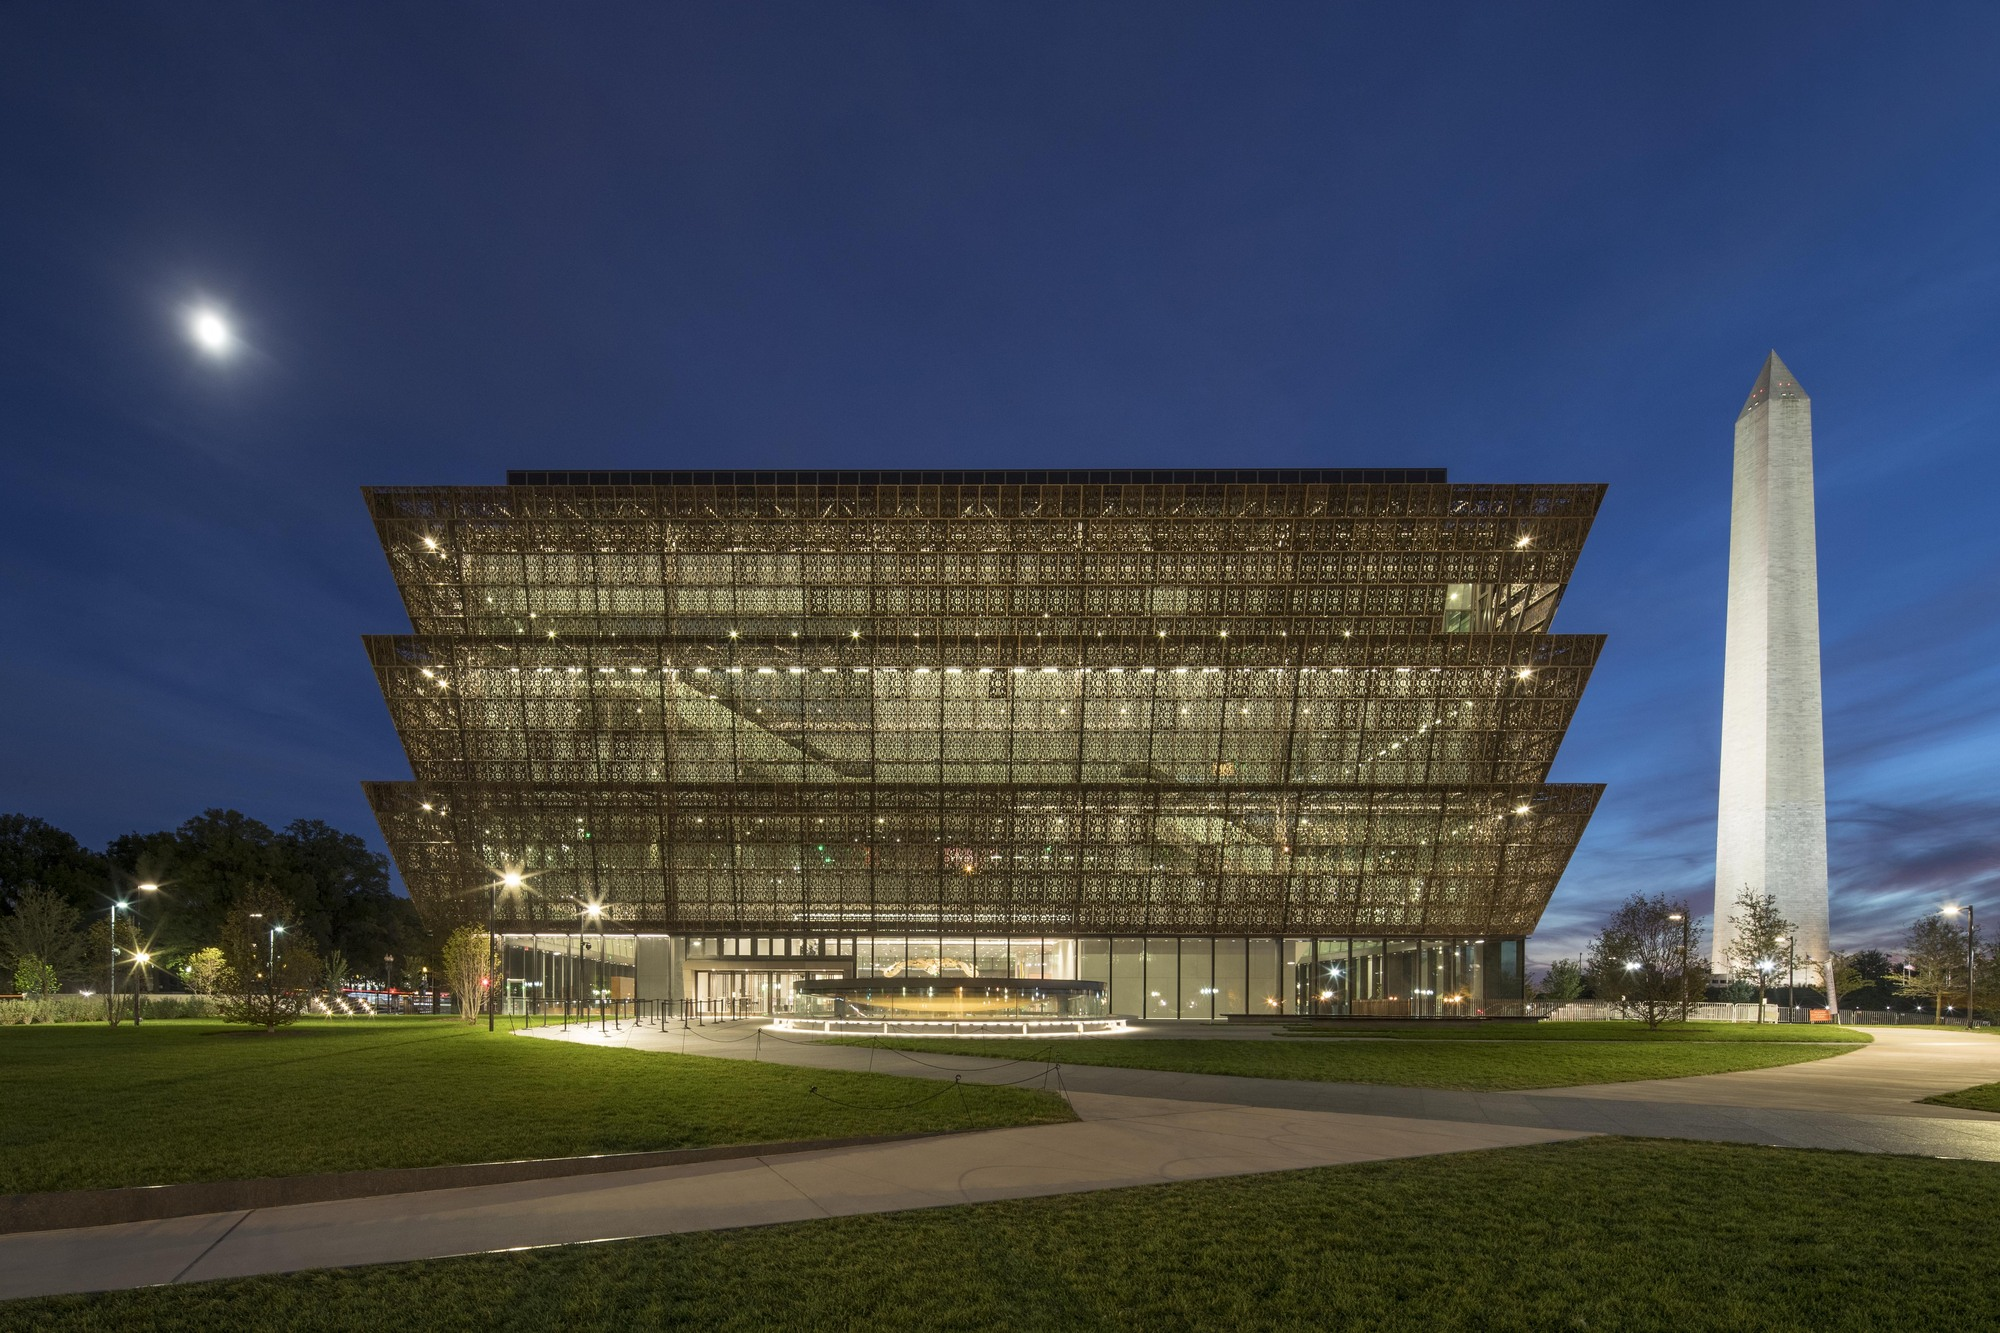 Smithsonian National Museum of African American History Wins 2017 Design of the Year